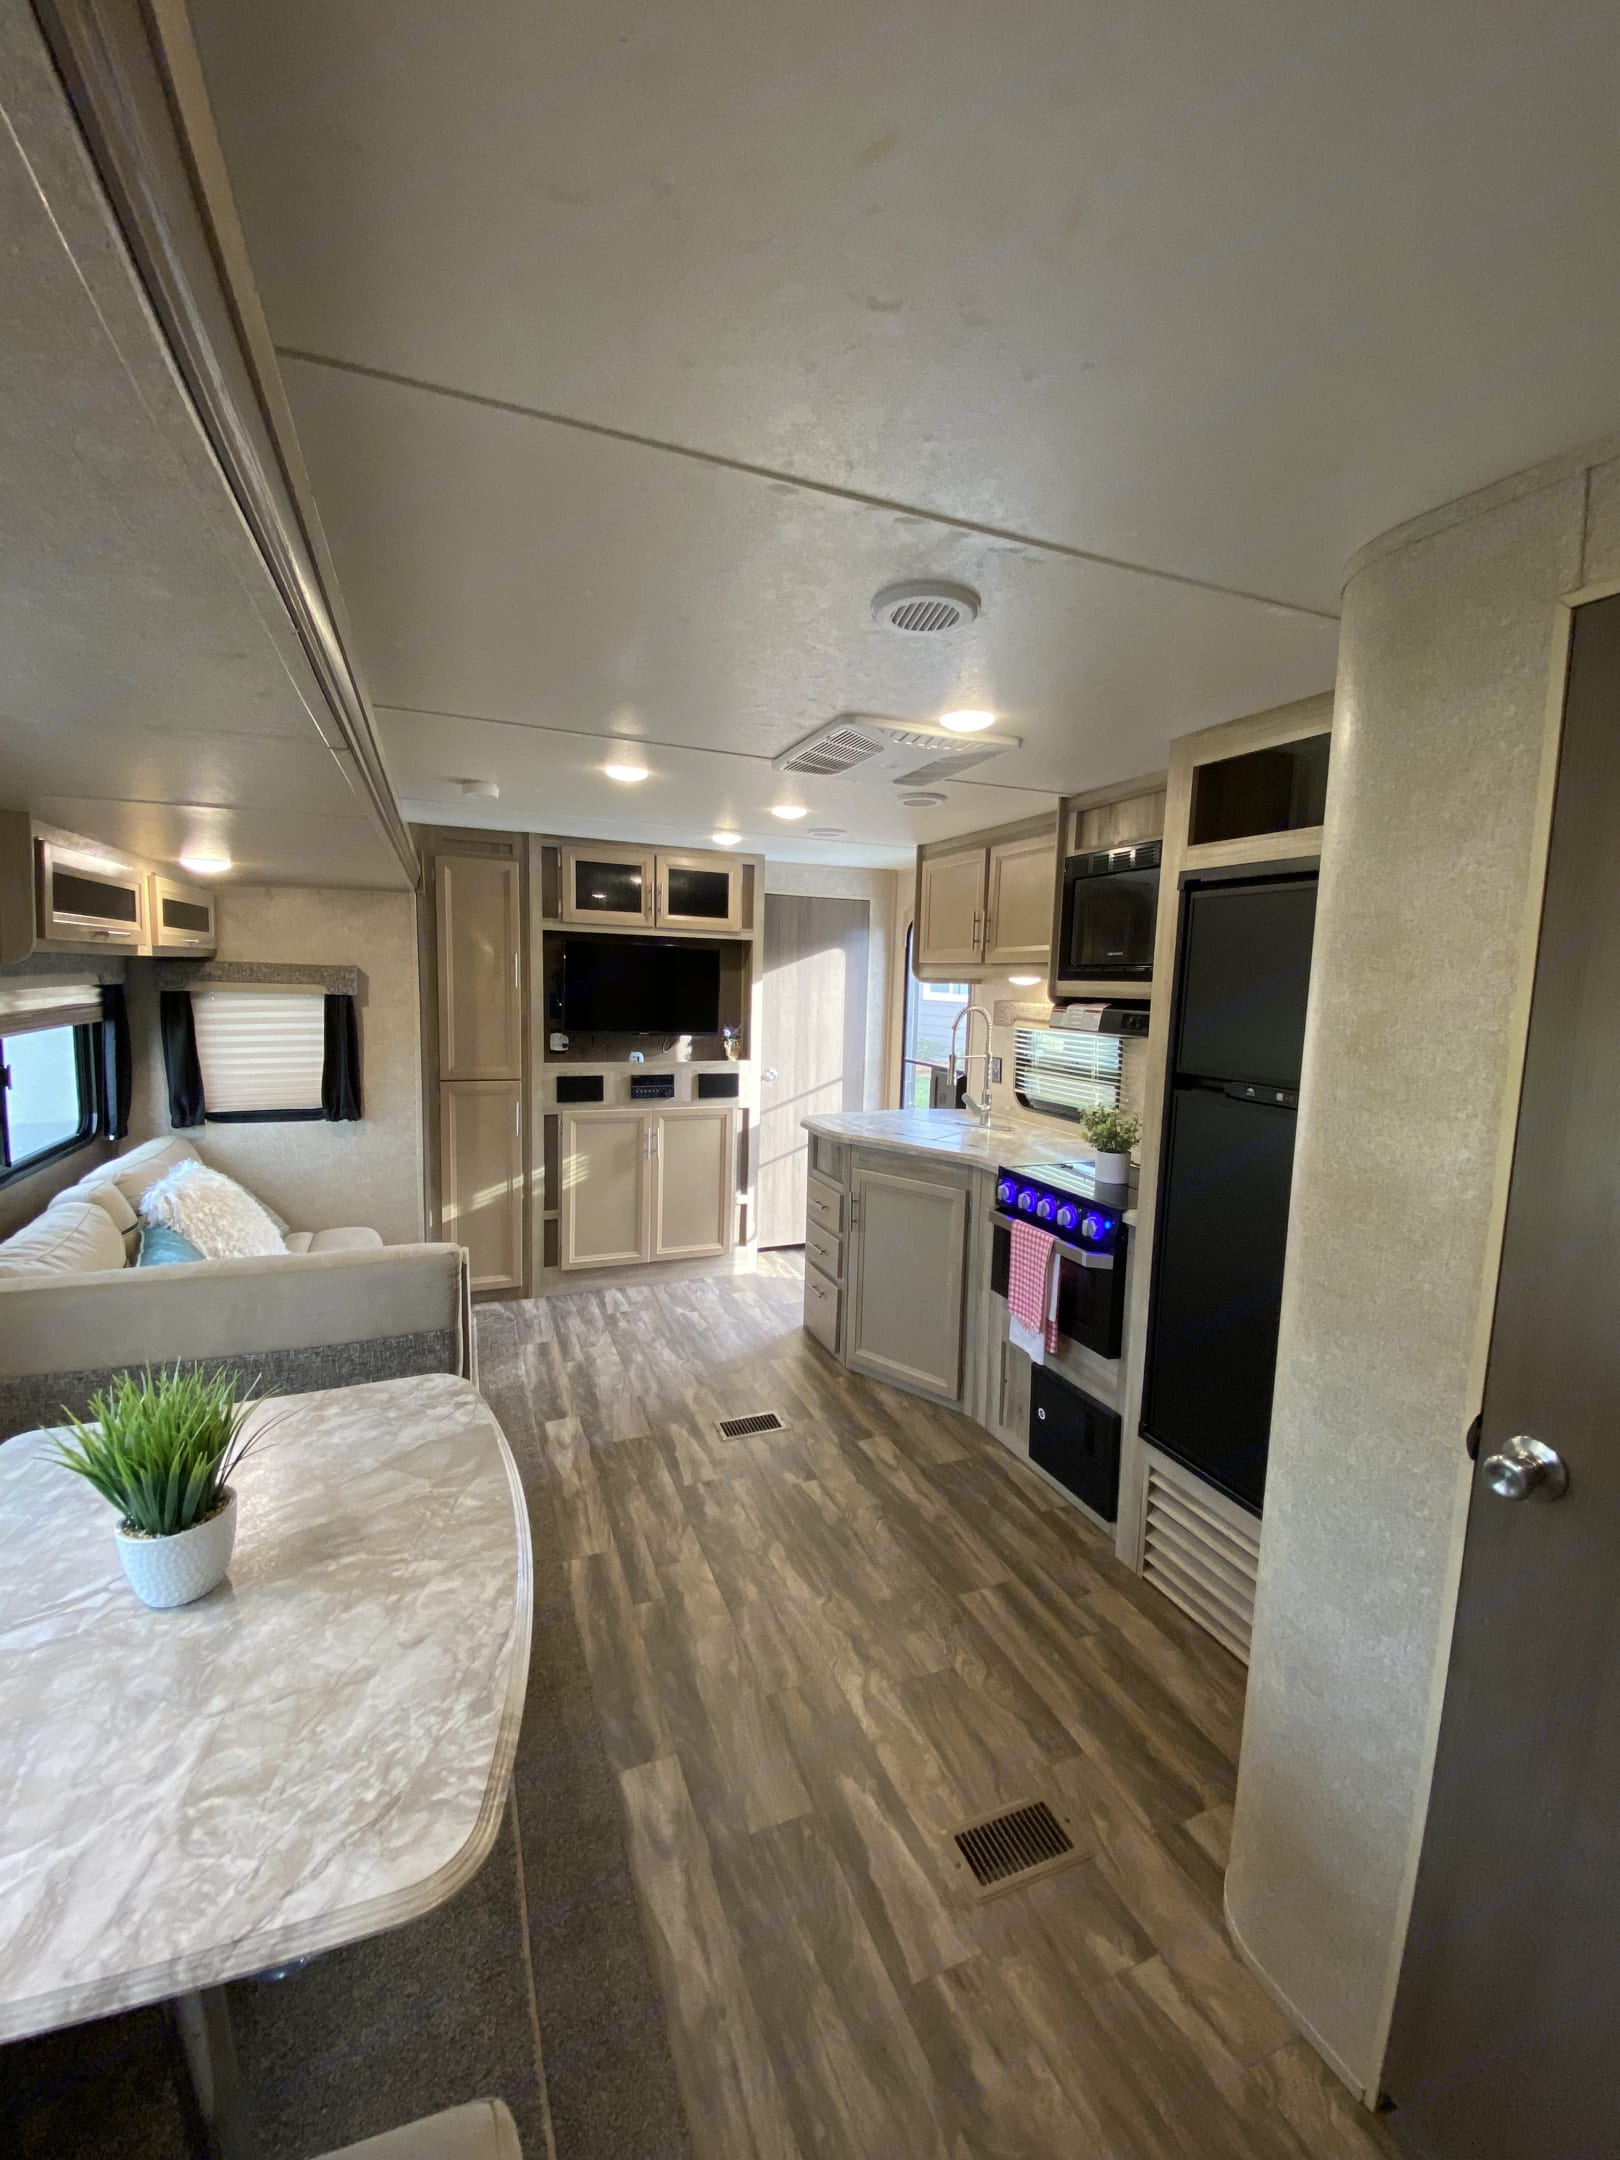 Lots of space. Coachmen Catalina 2019